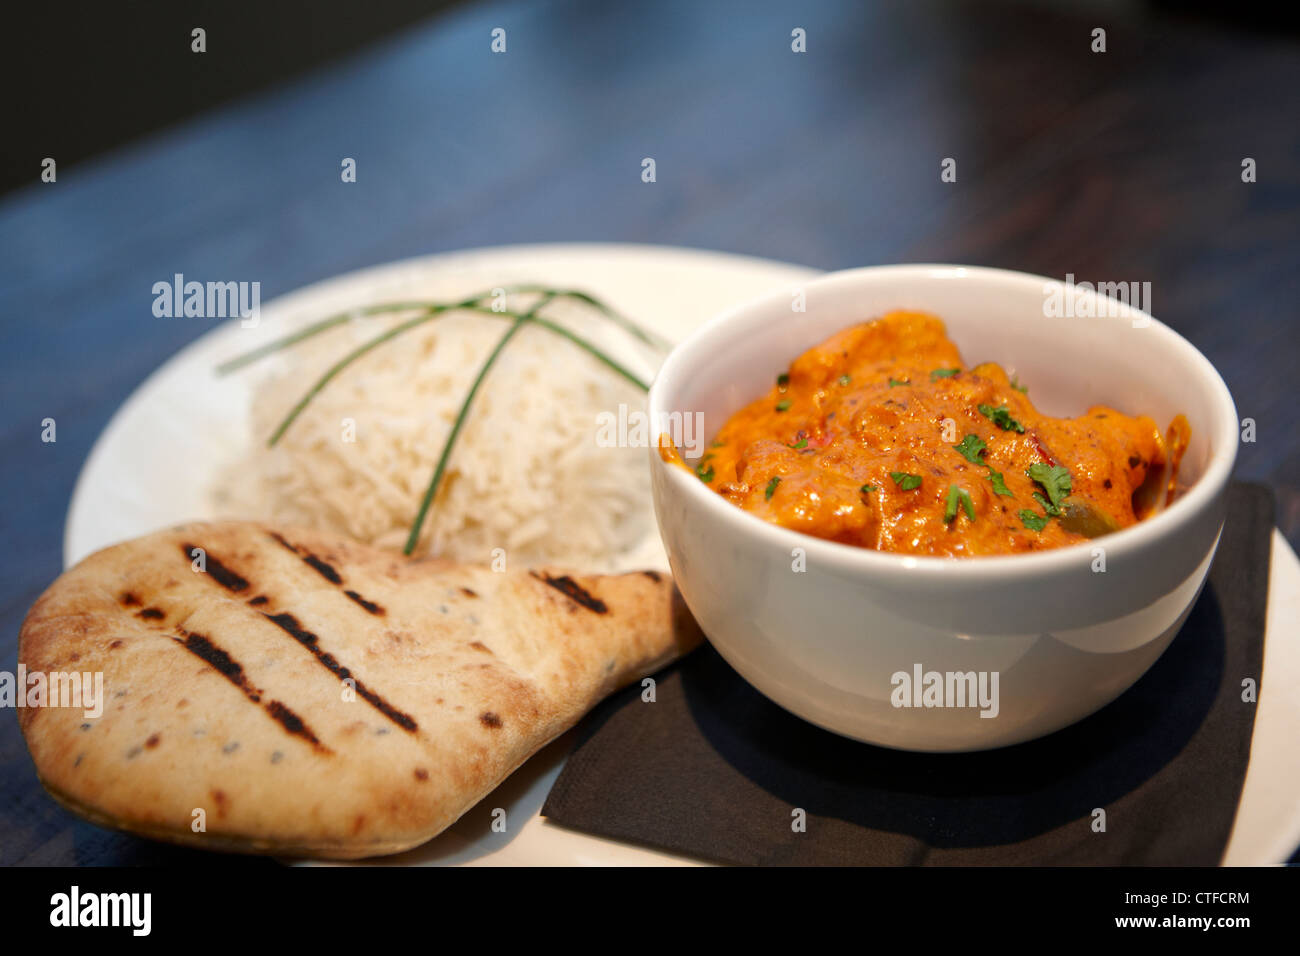 Chicken curry and naan bread with rice - Stock Image